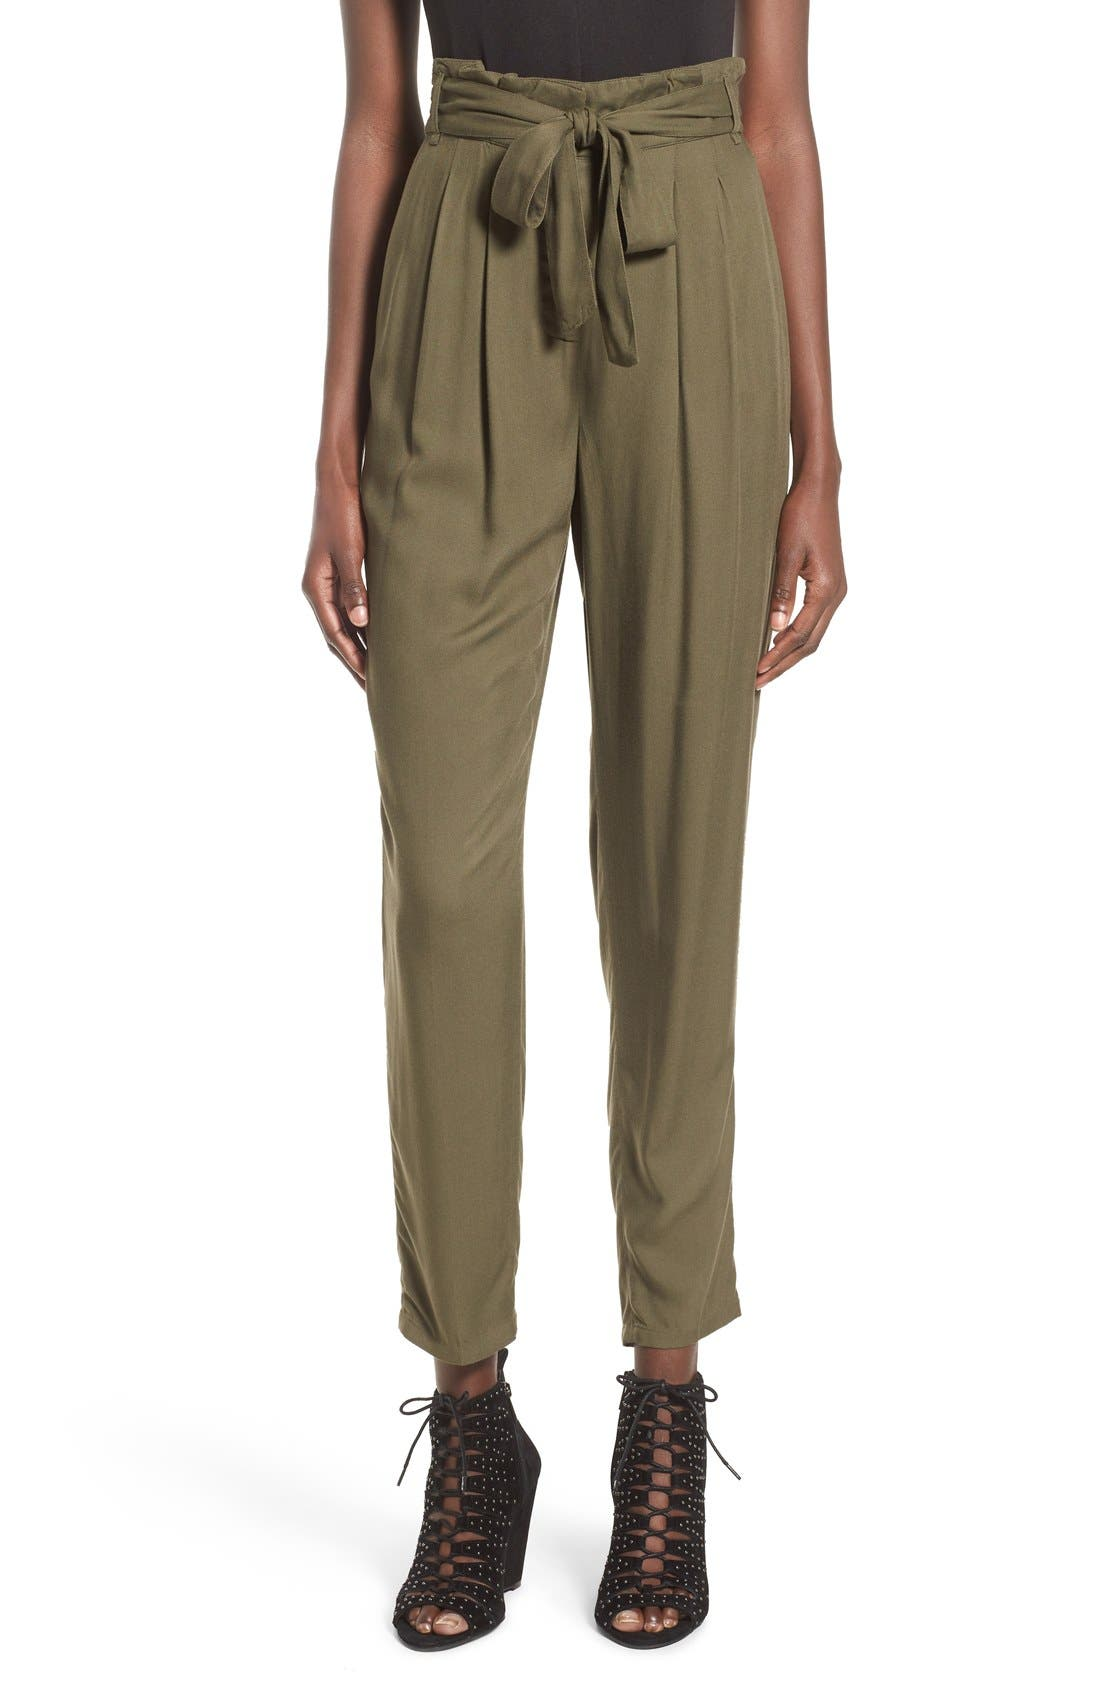 Alternate Image 1 Selected - Leith Tie Waist Pants